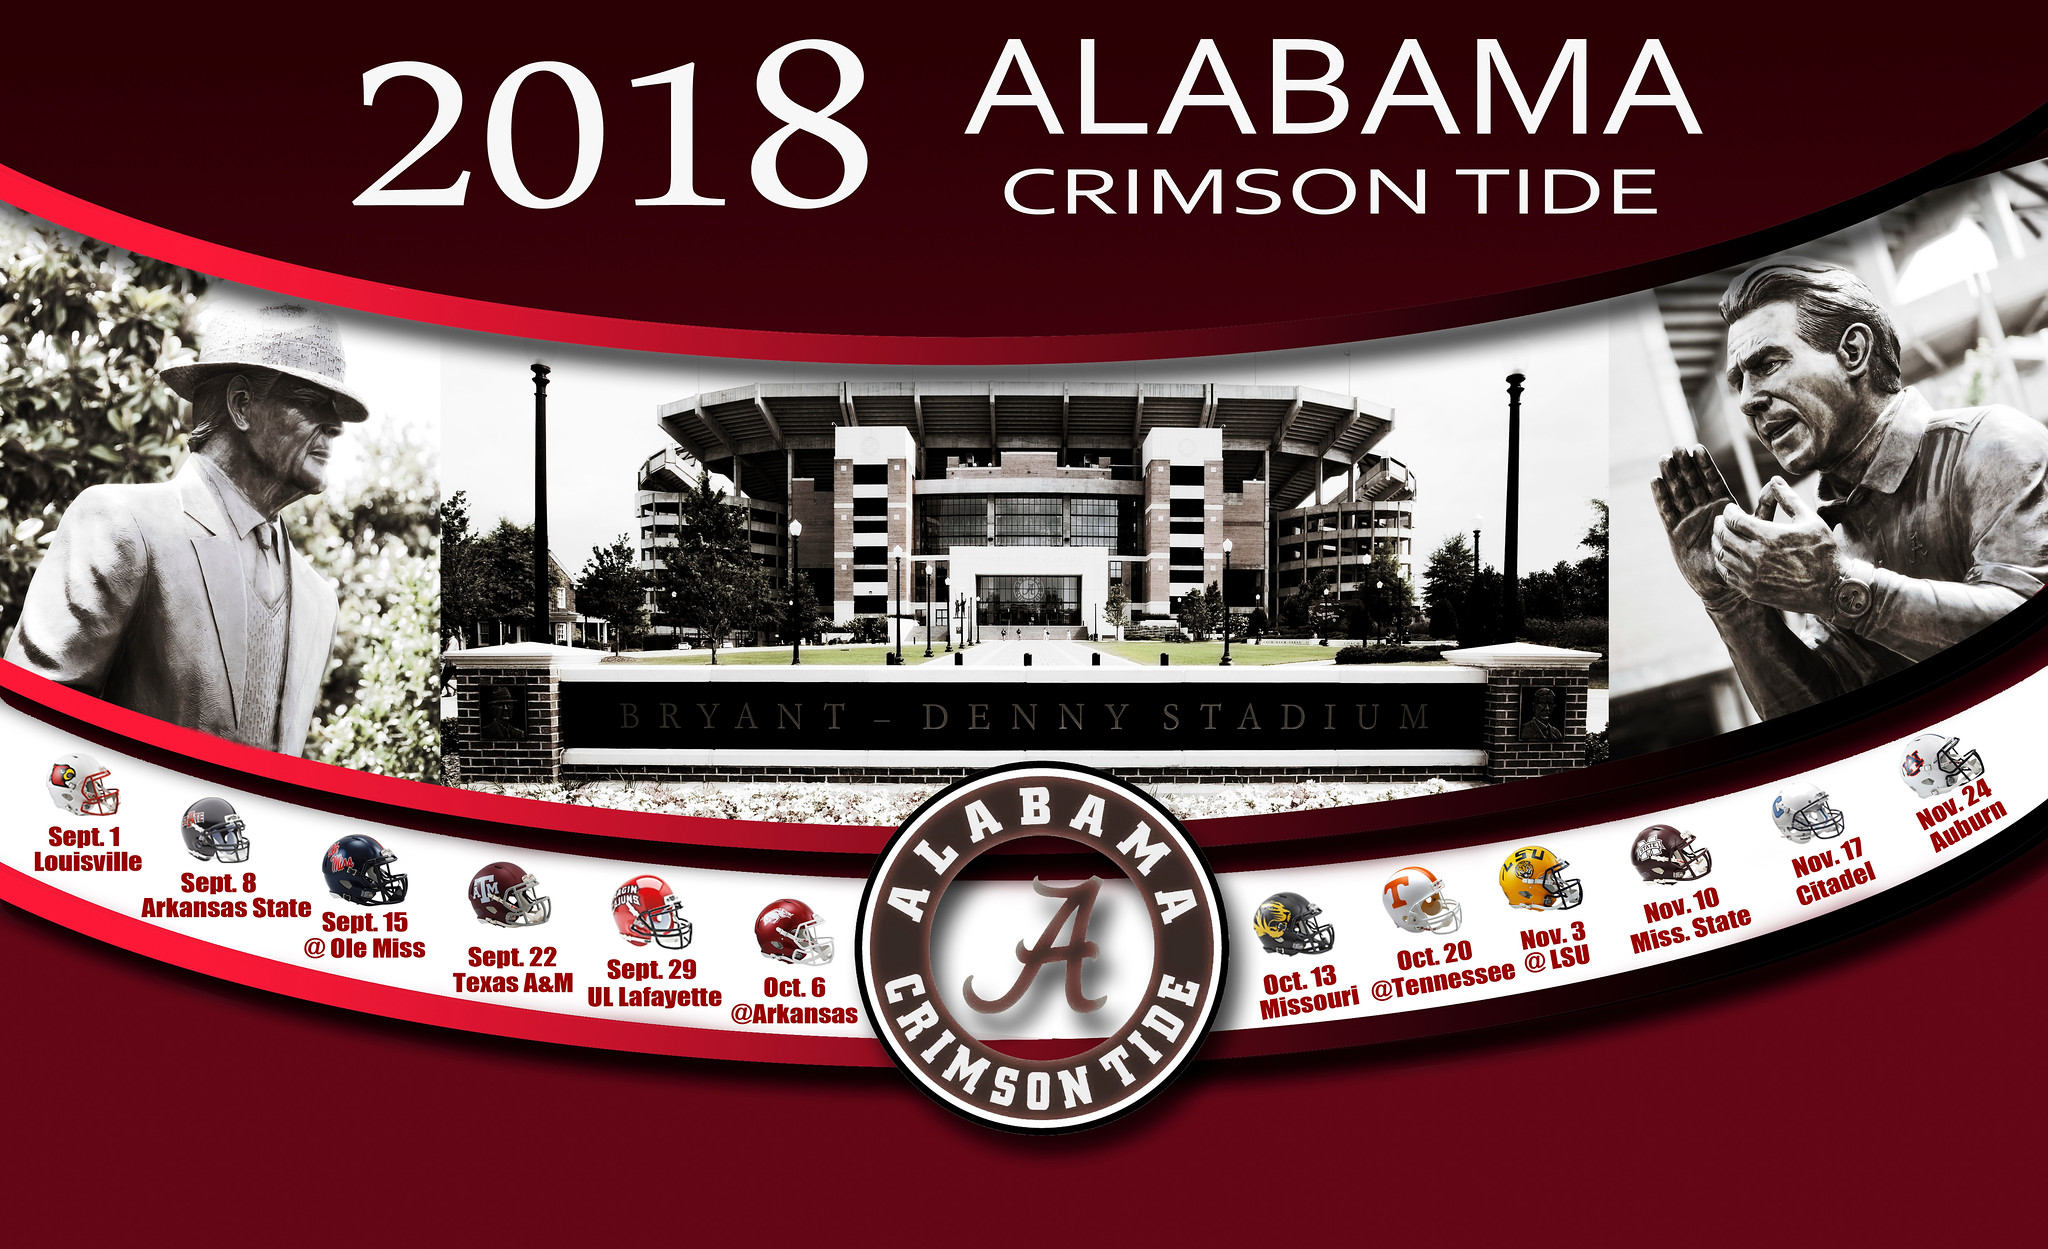 ftbl - 2018 schedule wallpaper for your computer |